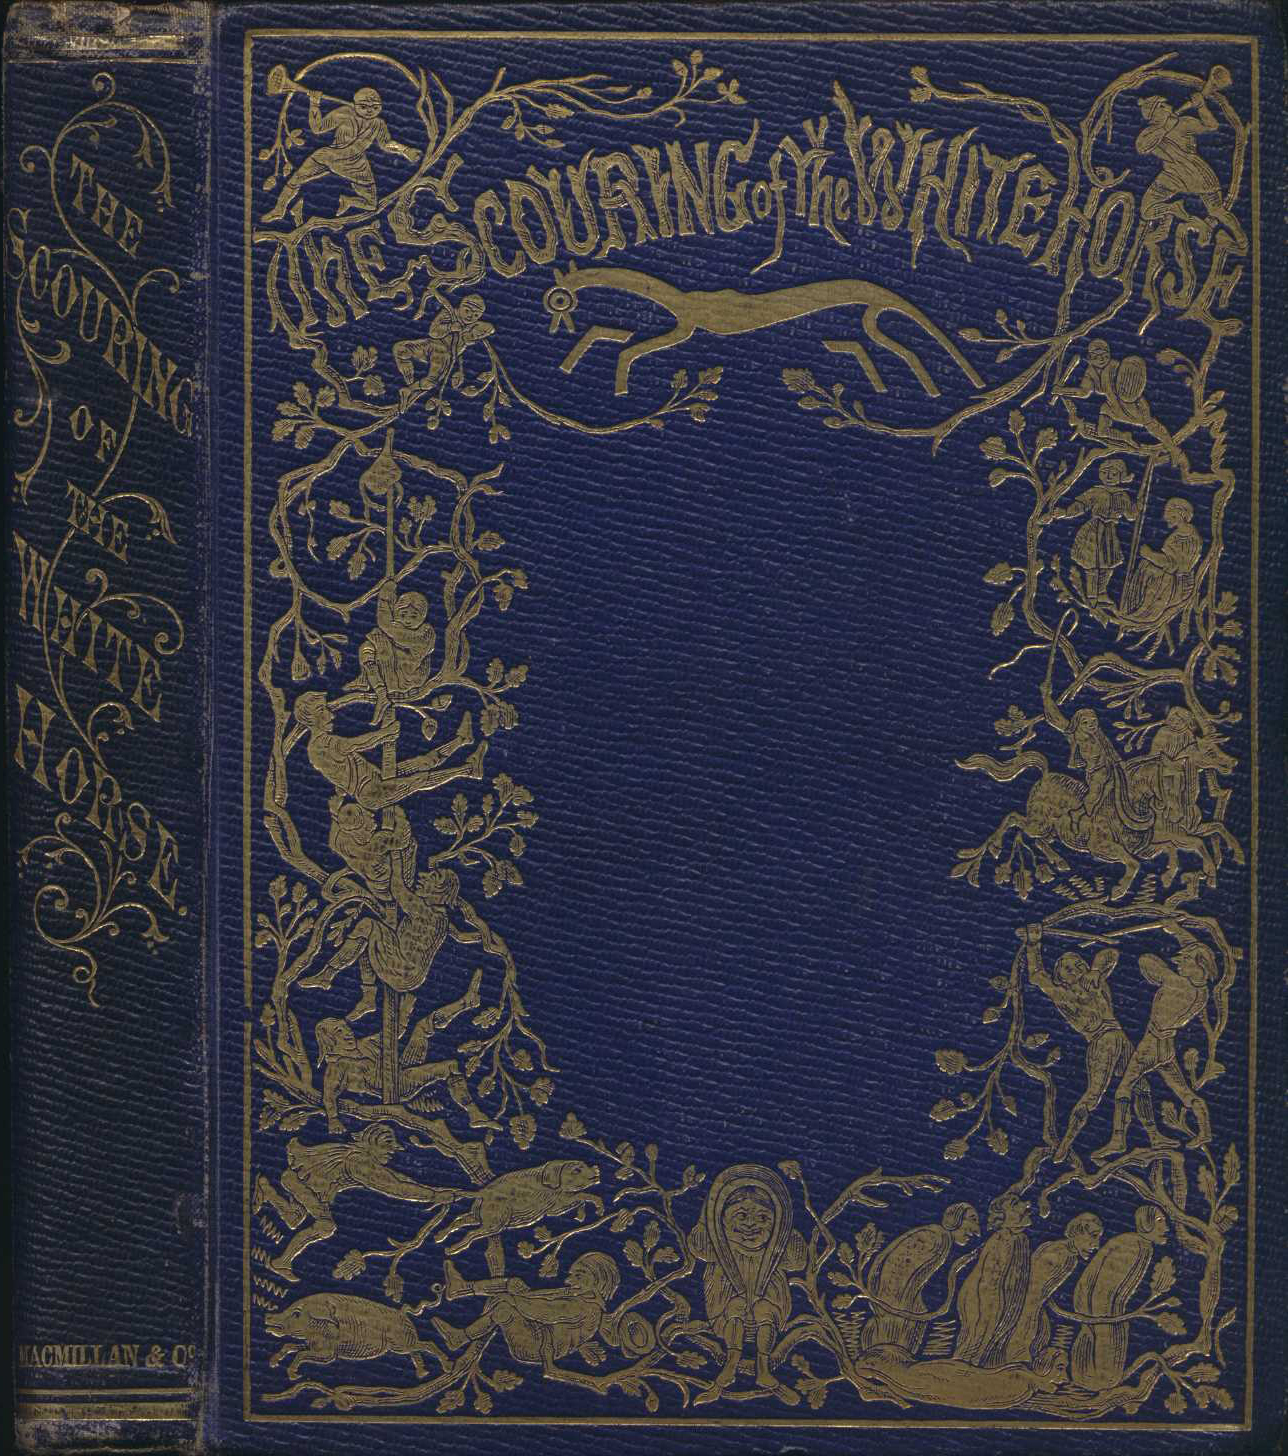 Thomas Hughes. The scouring of the White Horse, or, The long vacation ramble of a London clerk. Cambridge: Macmillan, 1859.